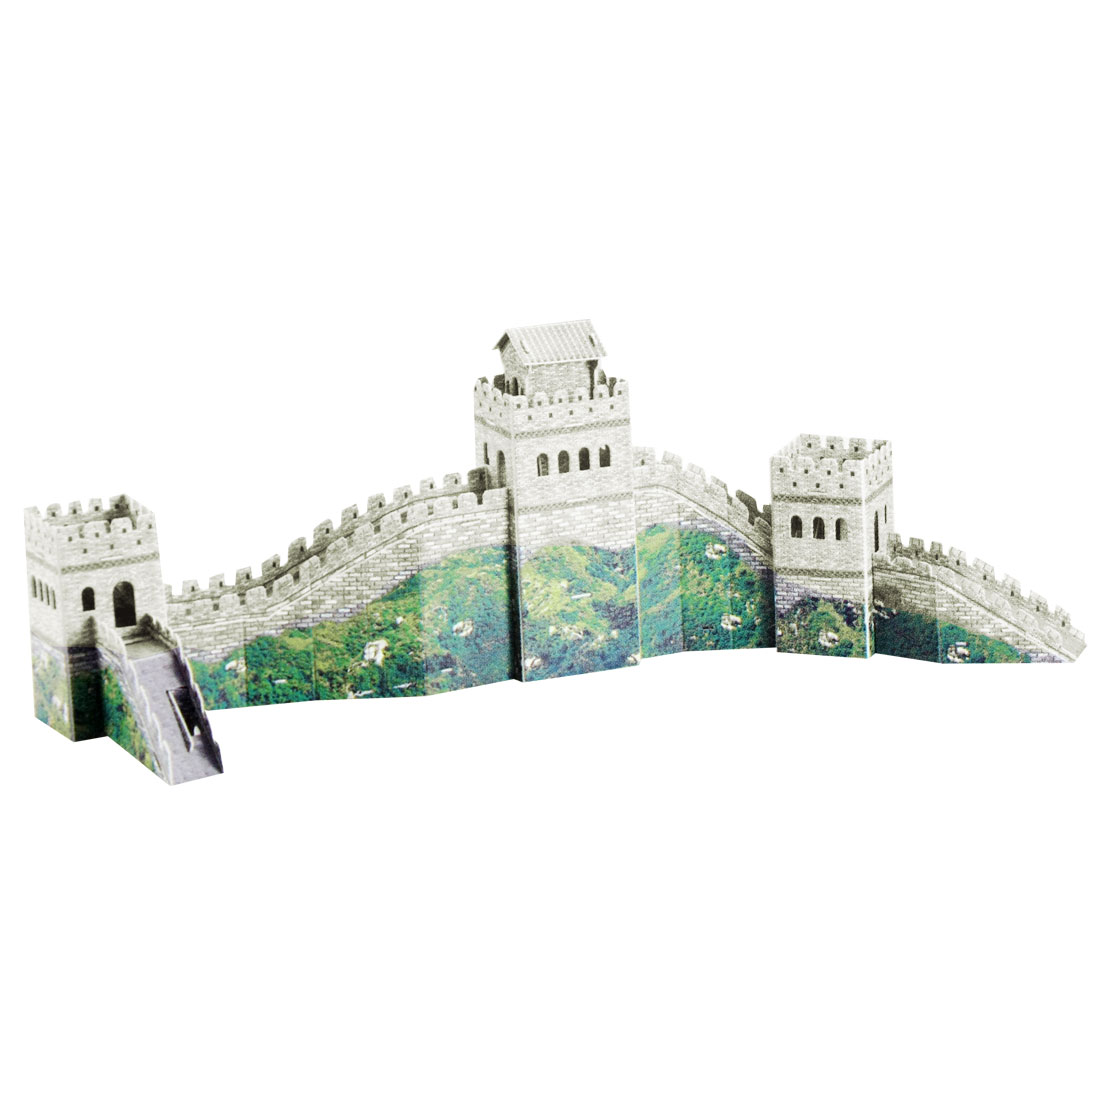 Child Foam The Great Wall Model 3D DIY Piece Together Puzzle Toy